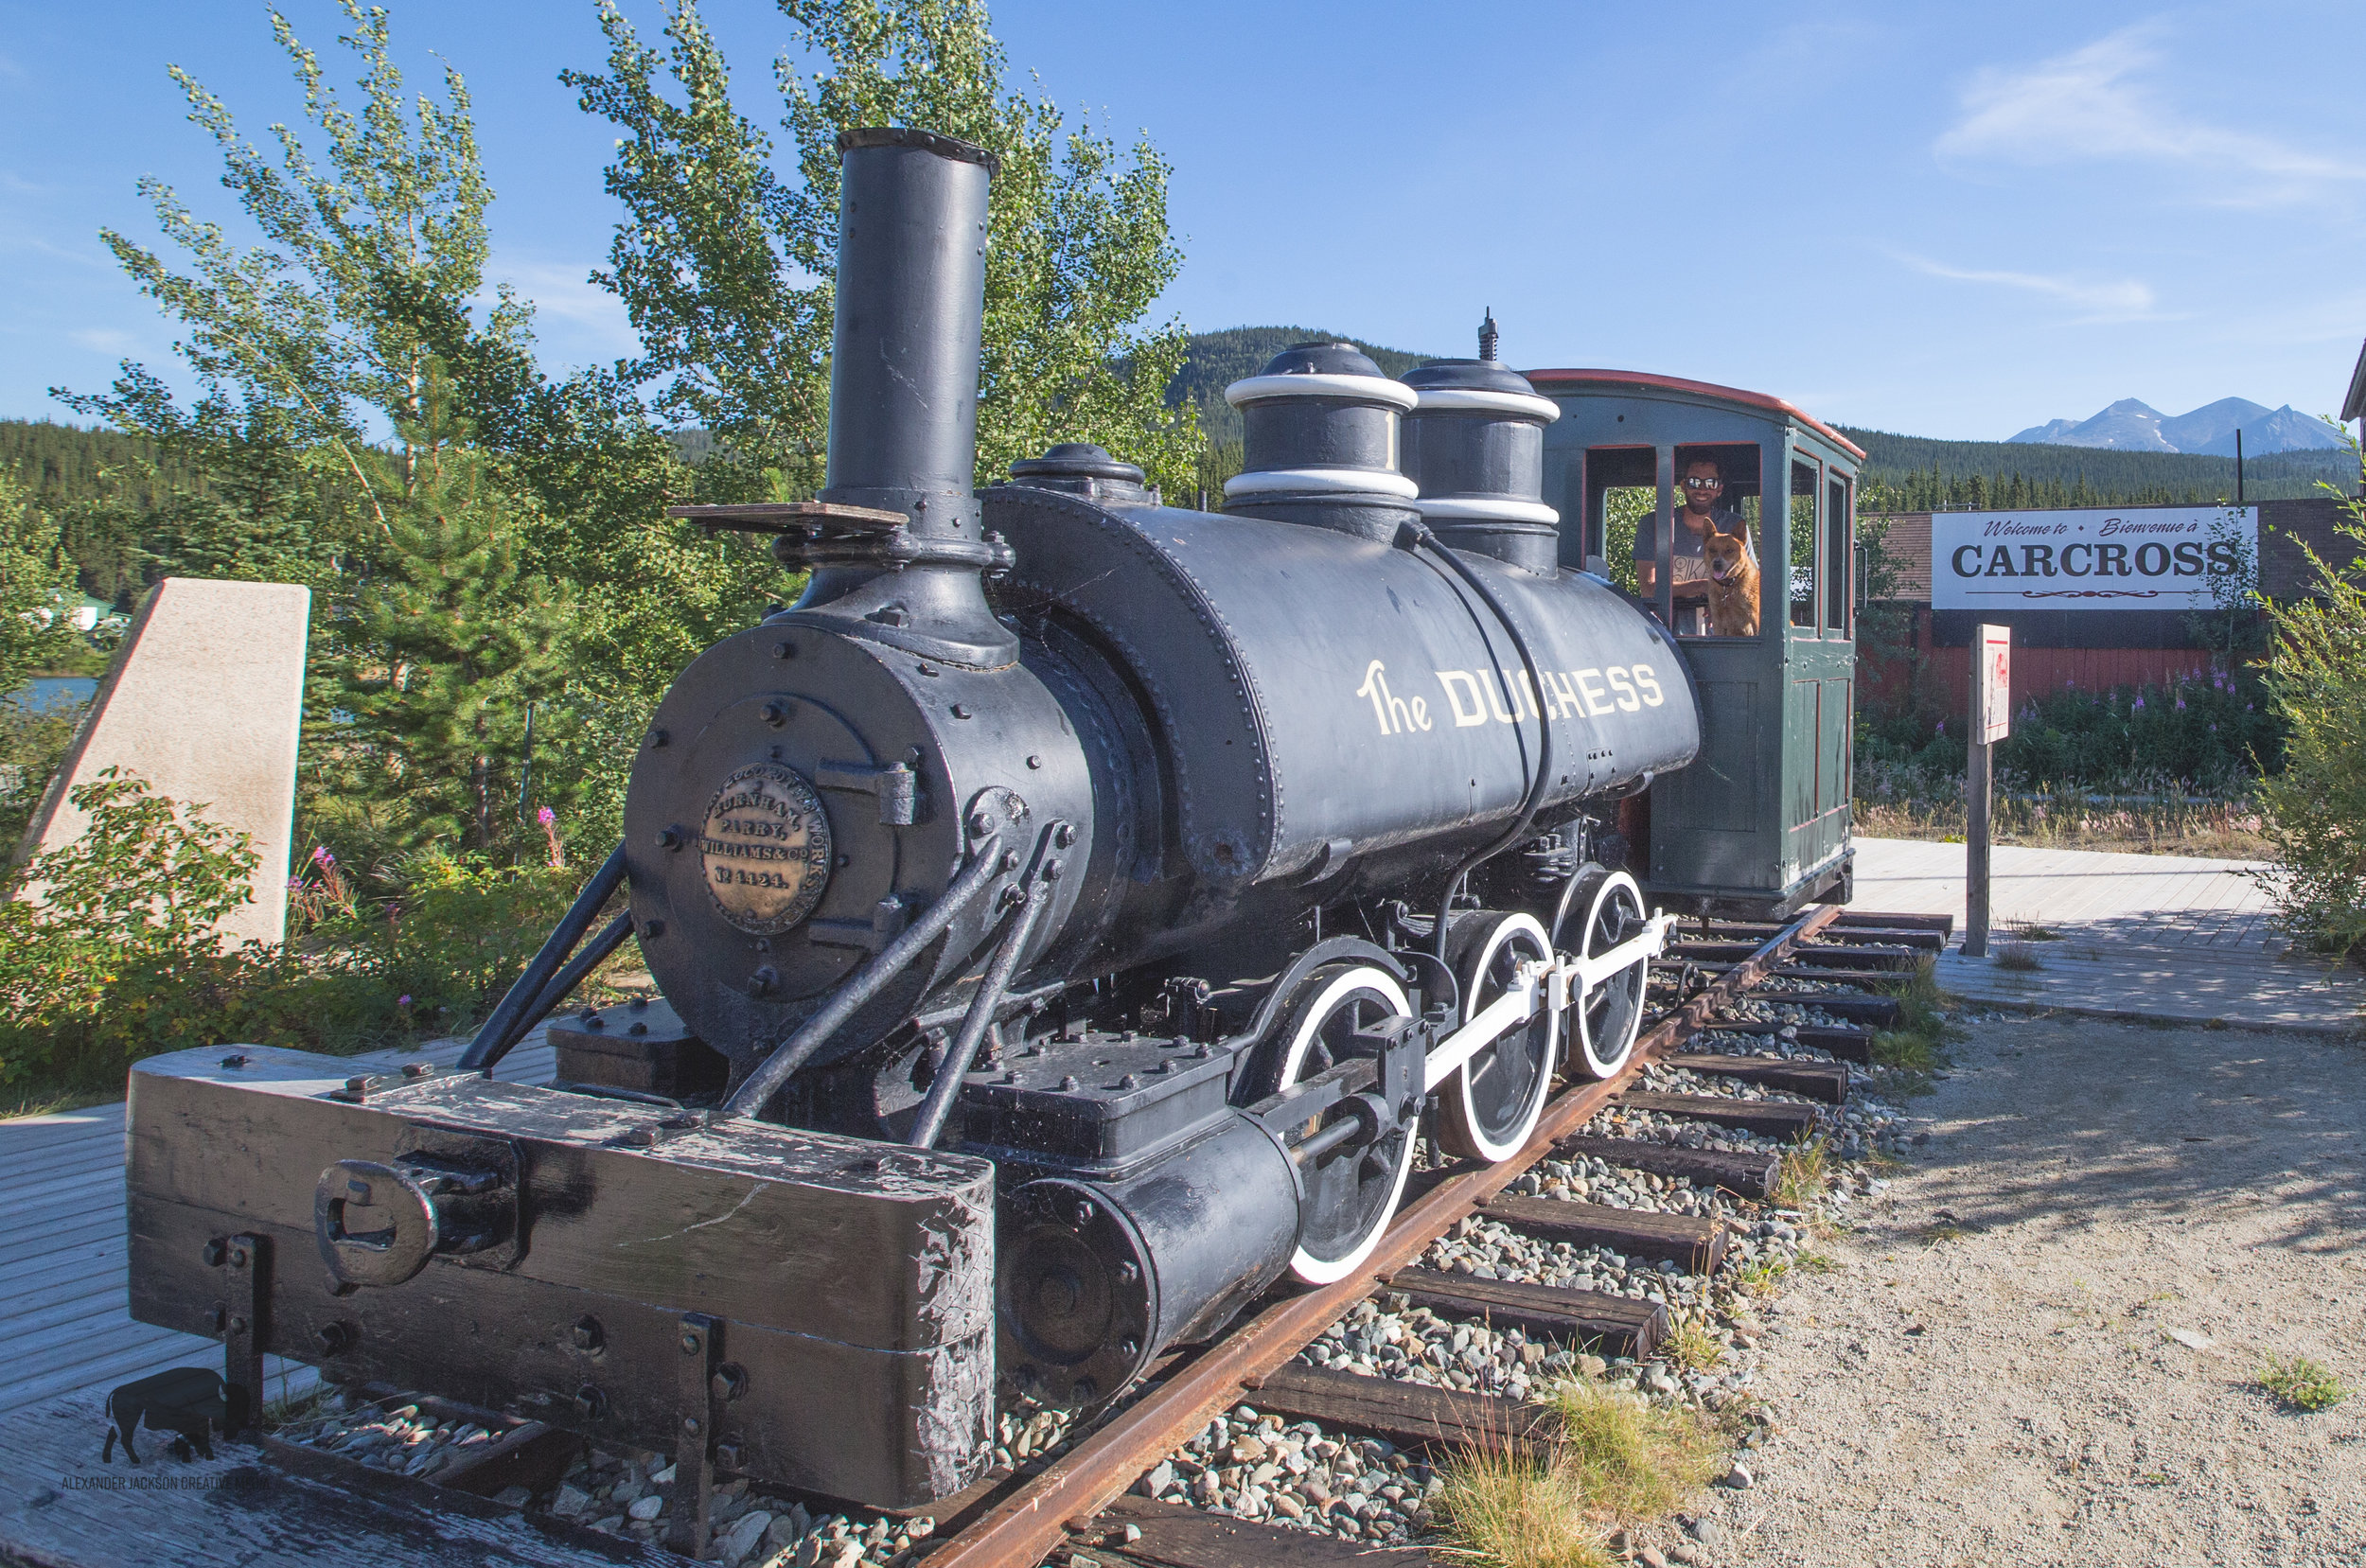 One of the earlier trains to take passengers to Skagway.